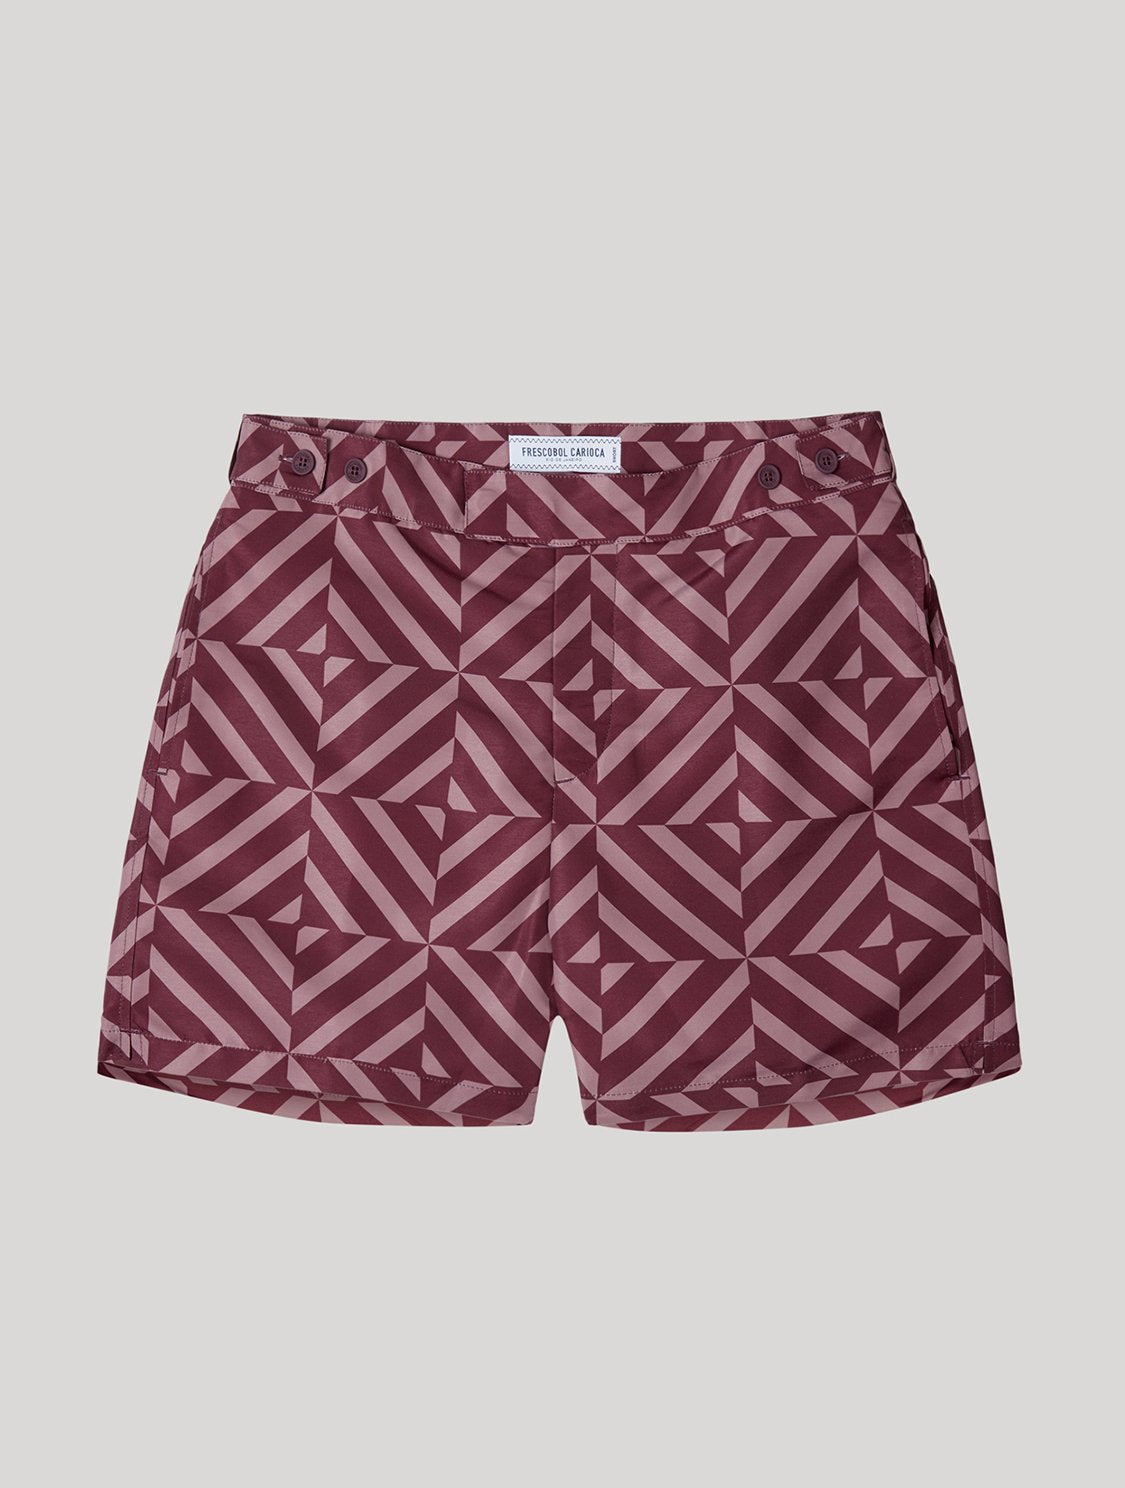 TAILORED SWIM SHORTS ANGRA TILE PRINT